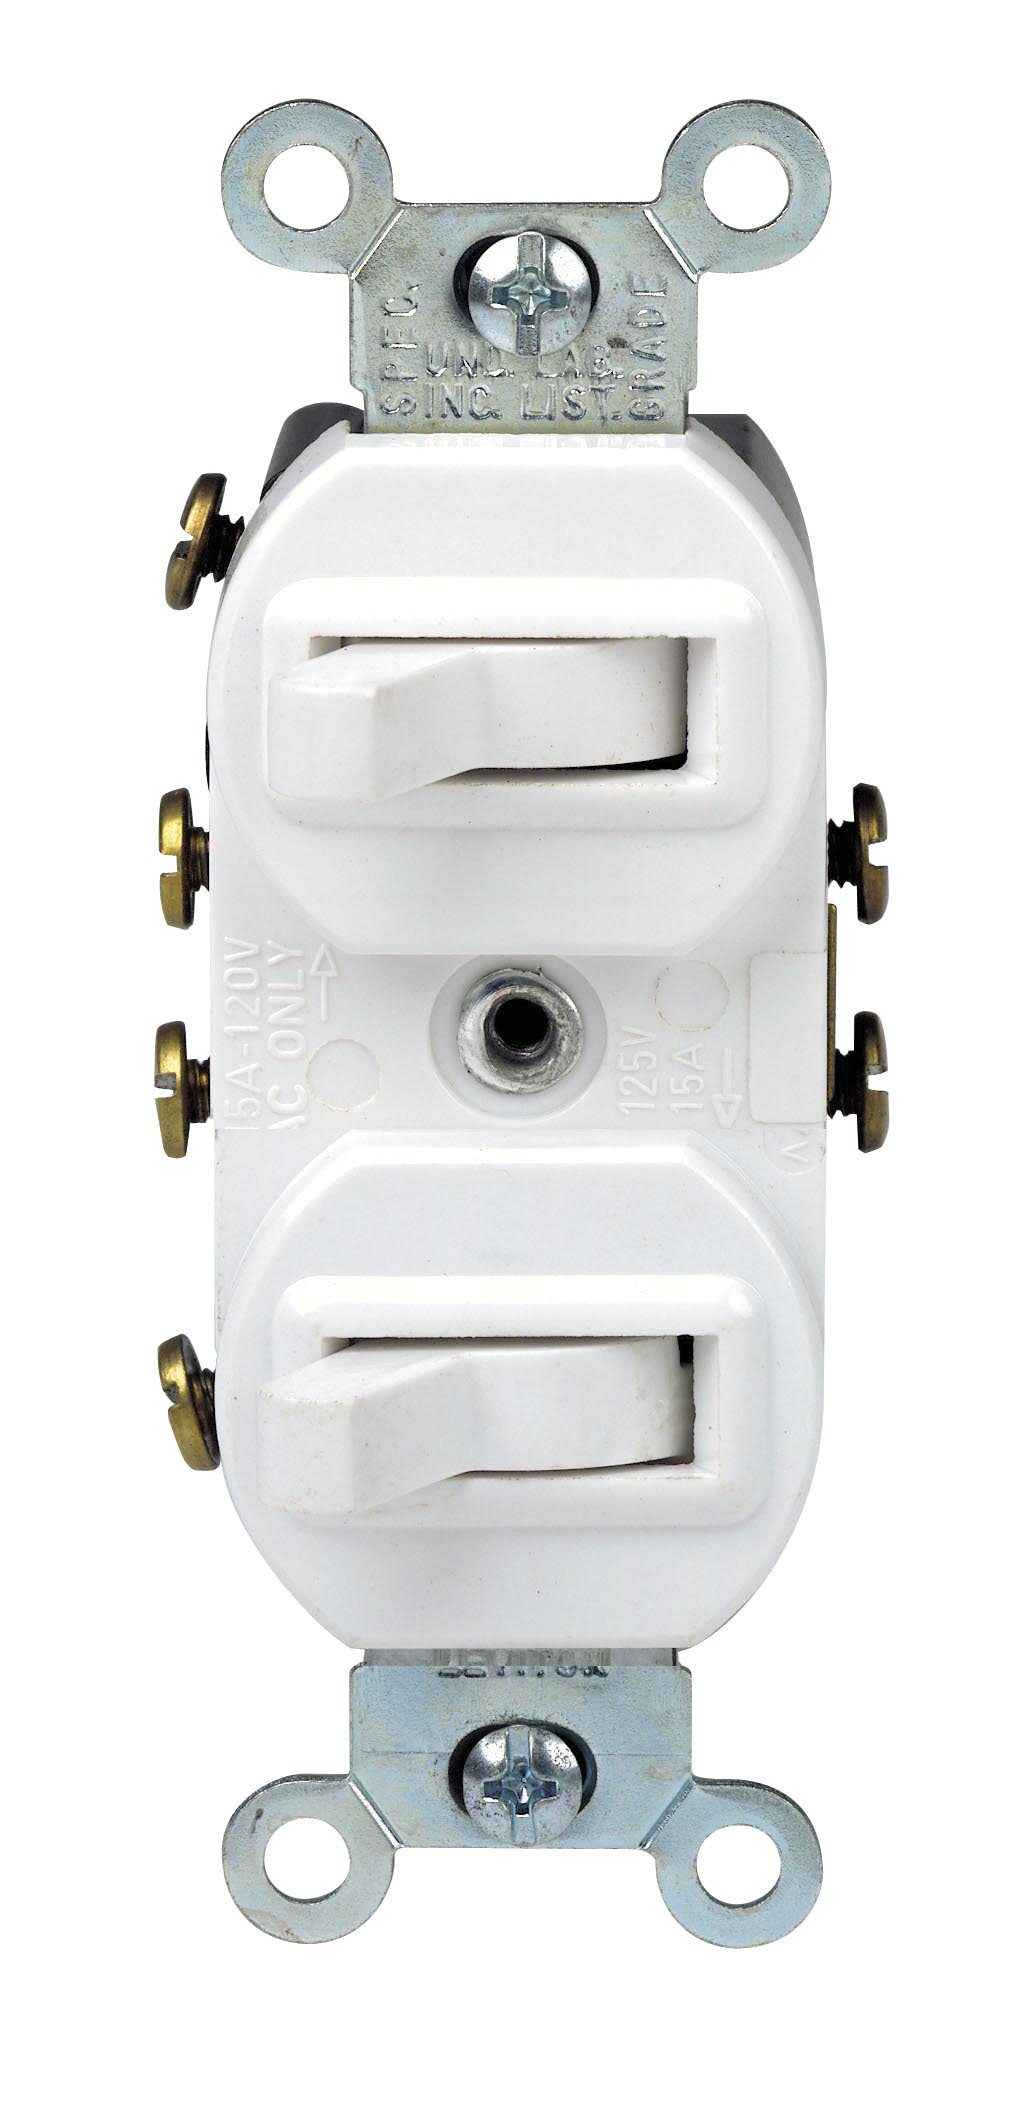 Best Rated In Electrical Light Switches Helpful Customer Reviews Wiring Spst Lighted Rocker To Split Duplex Receptacles Leviton 5243 W Toggle Switch With Grounding Screw 120 277 Vac